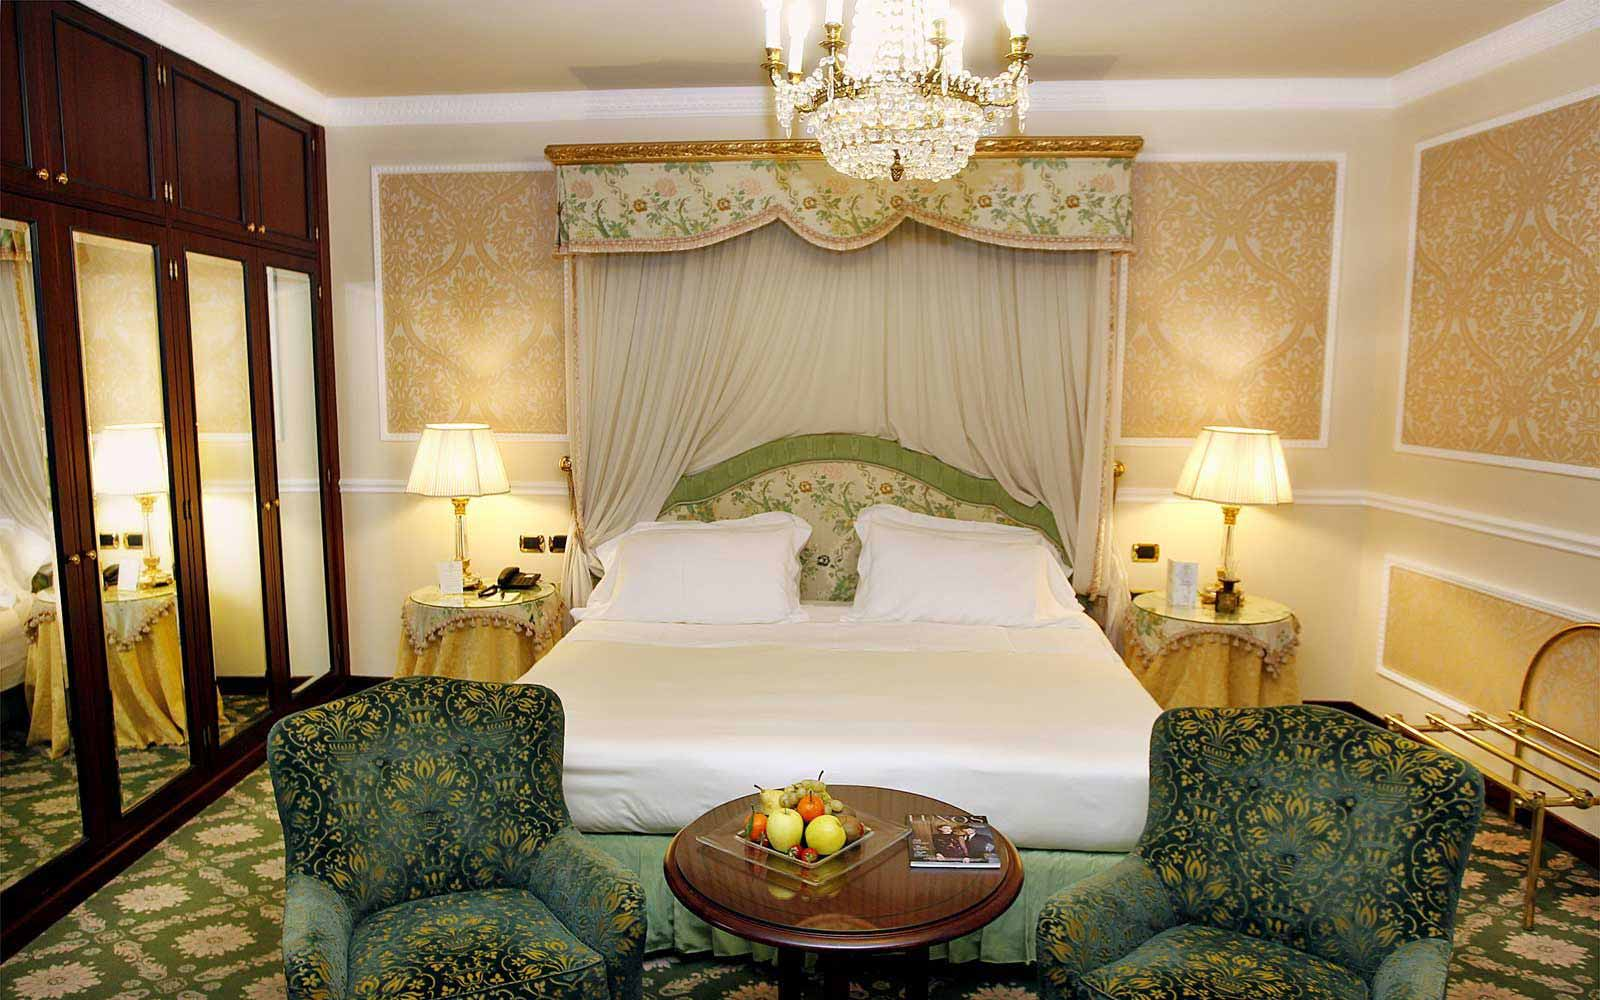 Deluxe room at Hotel Bernini Palace